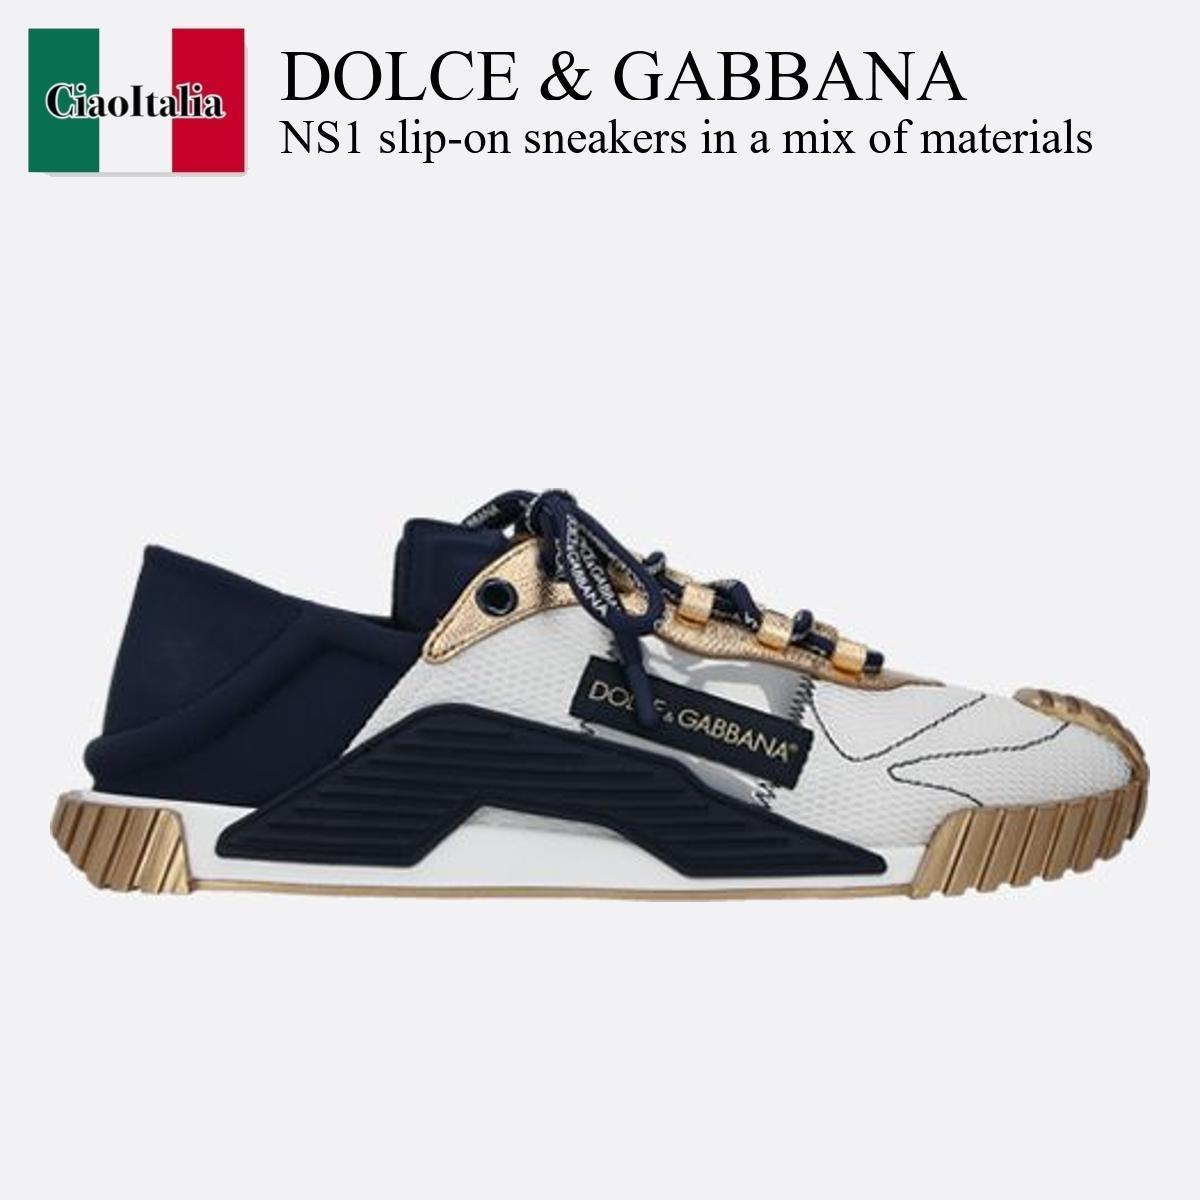 Dolce & Gabbana NS1 slip-on sneakers in a mix of materials (Dolce & Gabbana/スニーカー) NS1 SLIP-ON SNEAKERS IN A MIX OF MATERIA  CS1769 AO229  CS1769 AO229 8B96